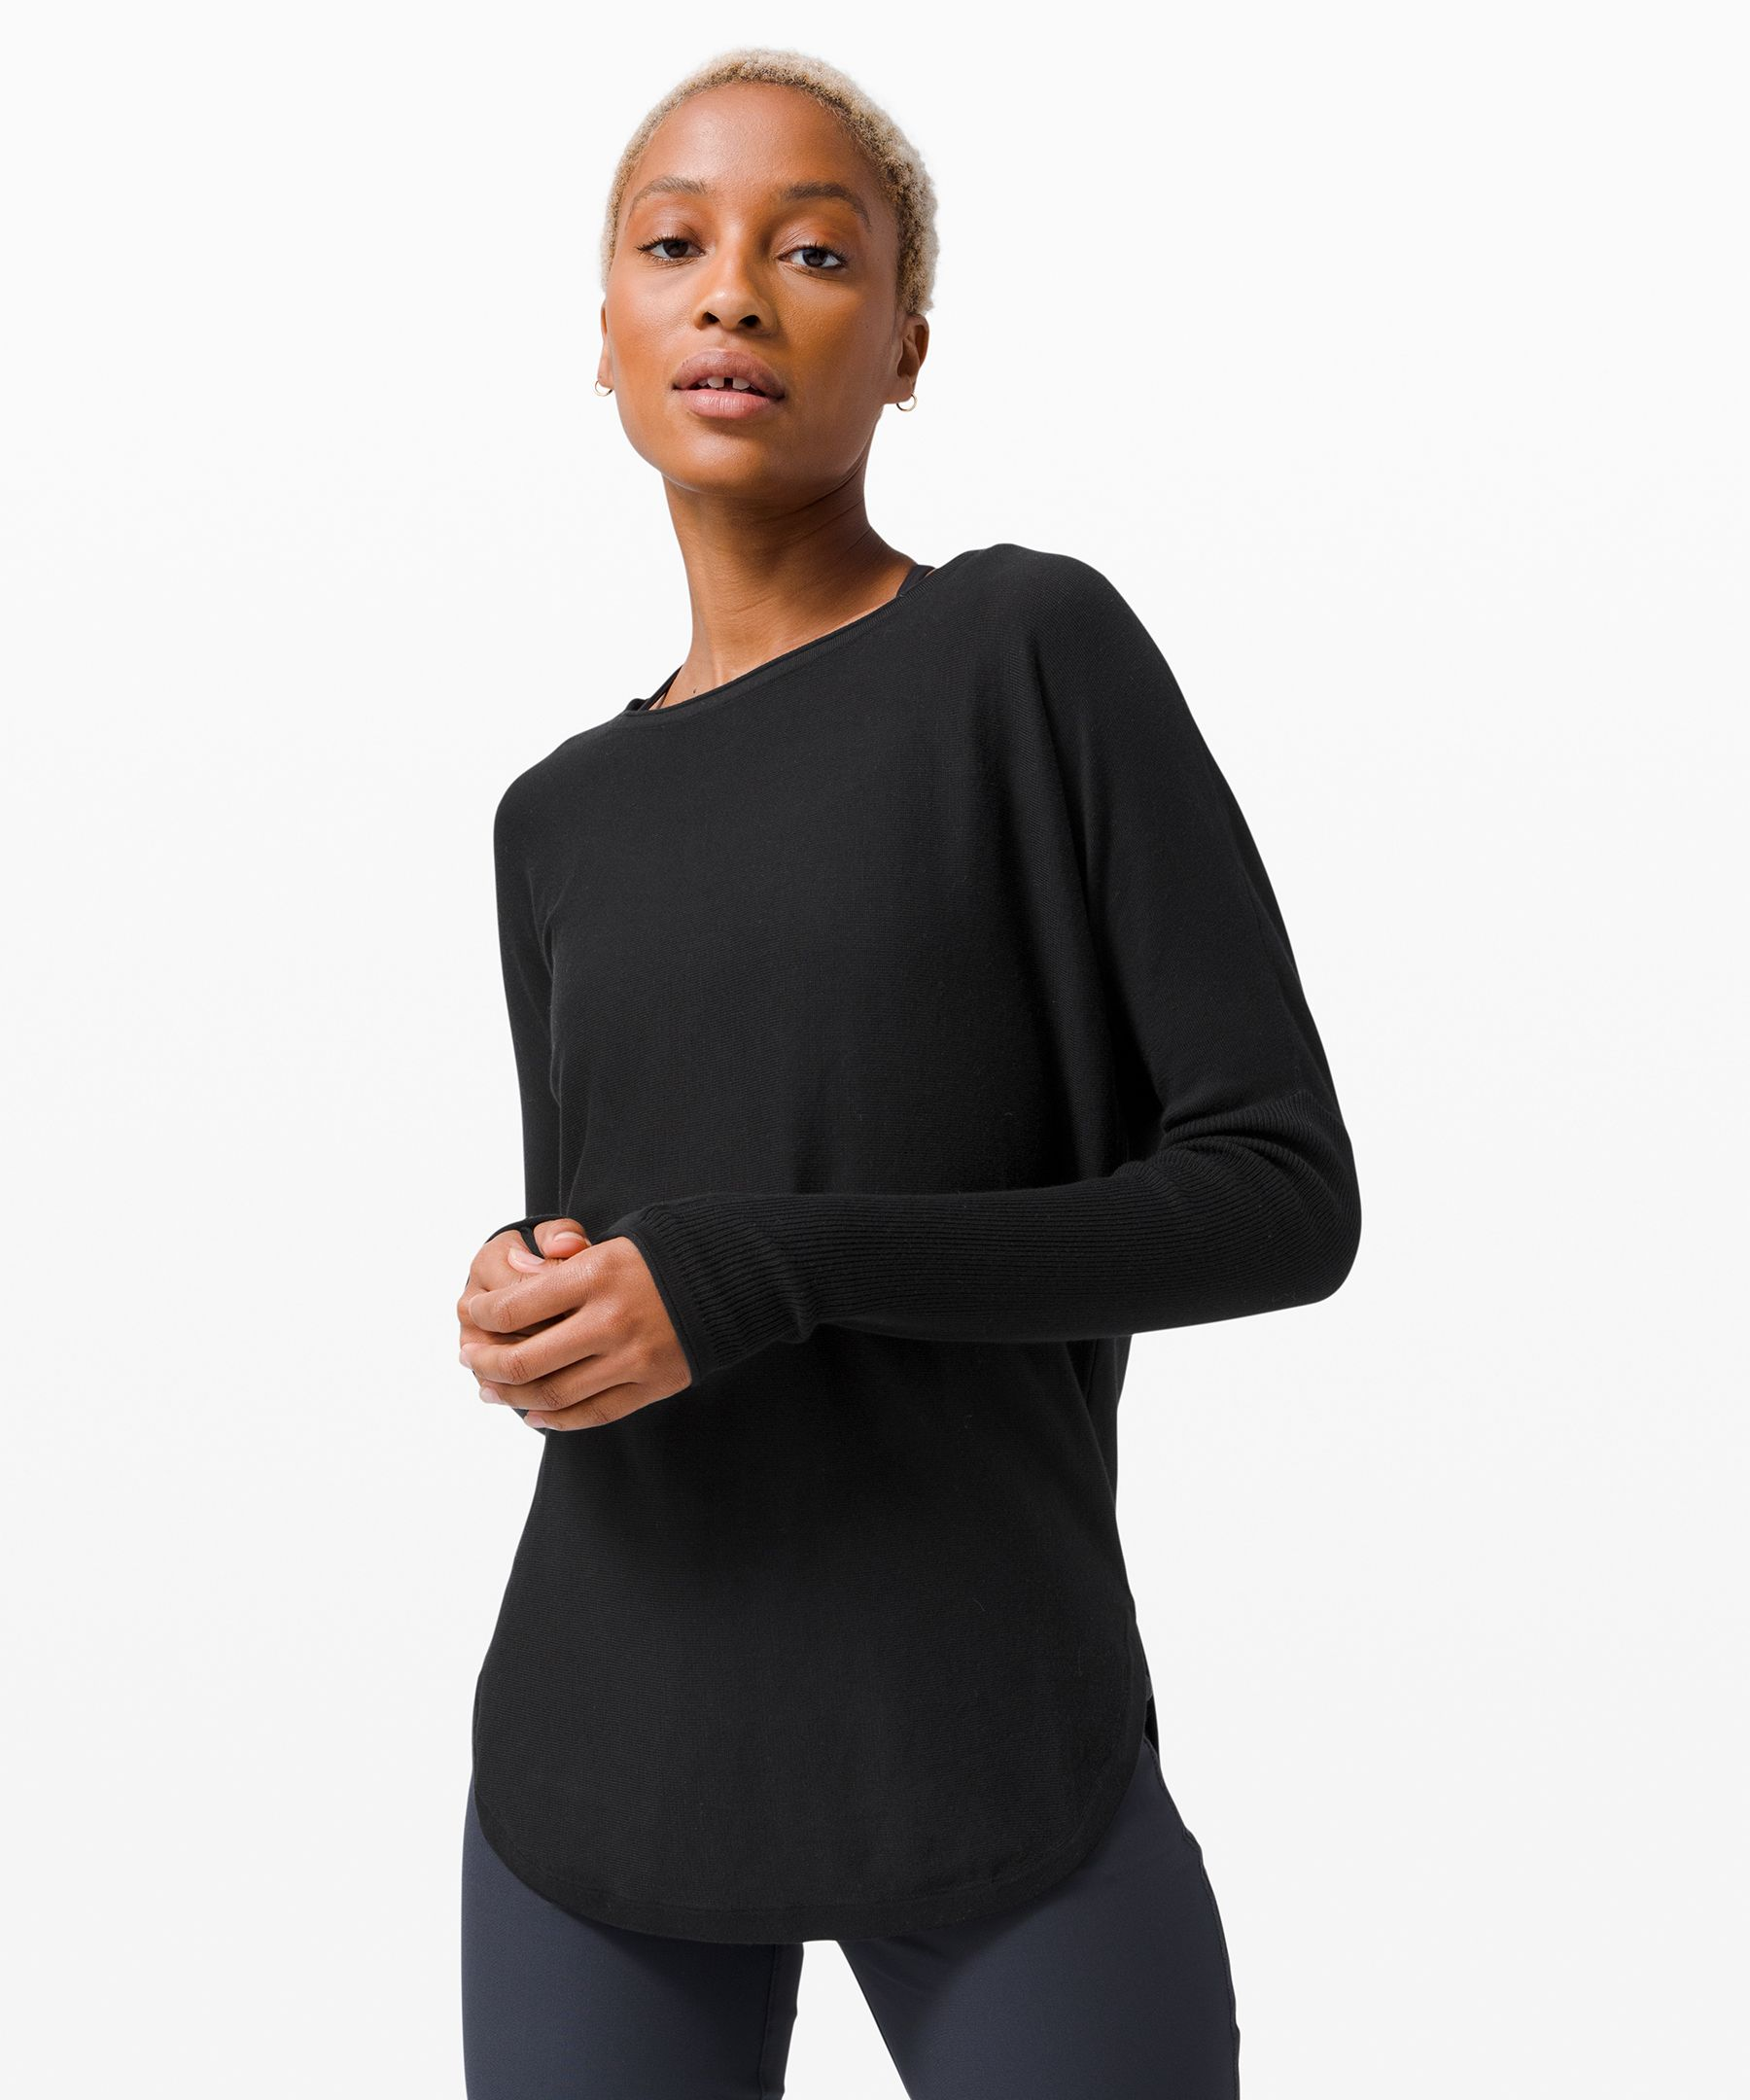 Grab and go. This light and  easy sweater has a rounded hem  and relaxed crew neck, making  it great for busy (and not so  busy) days.